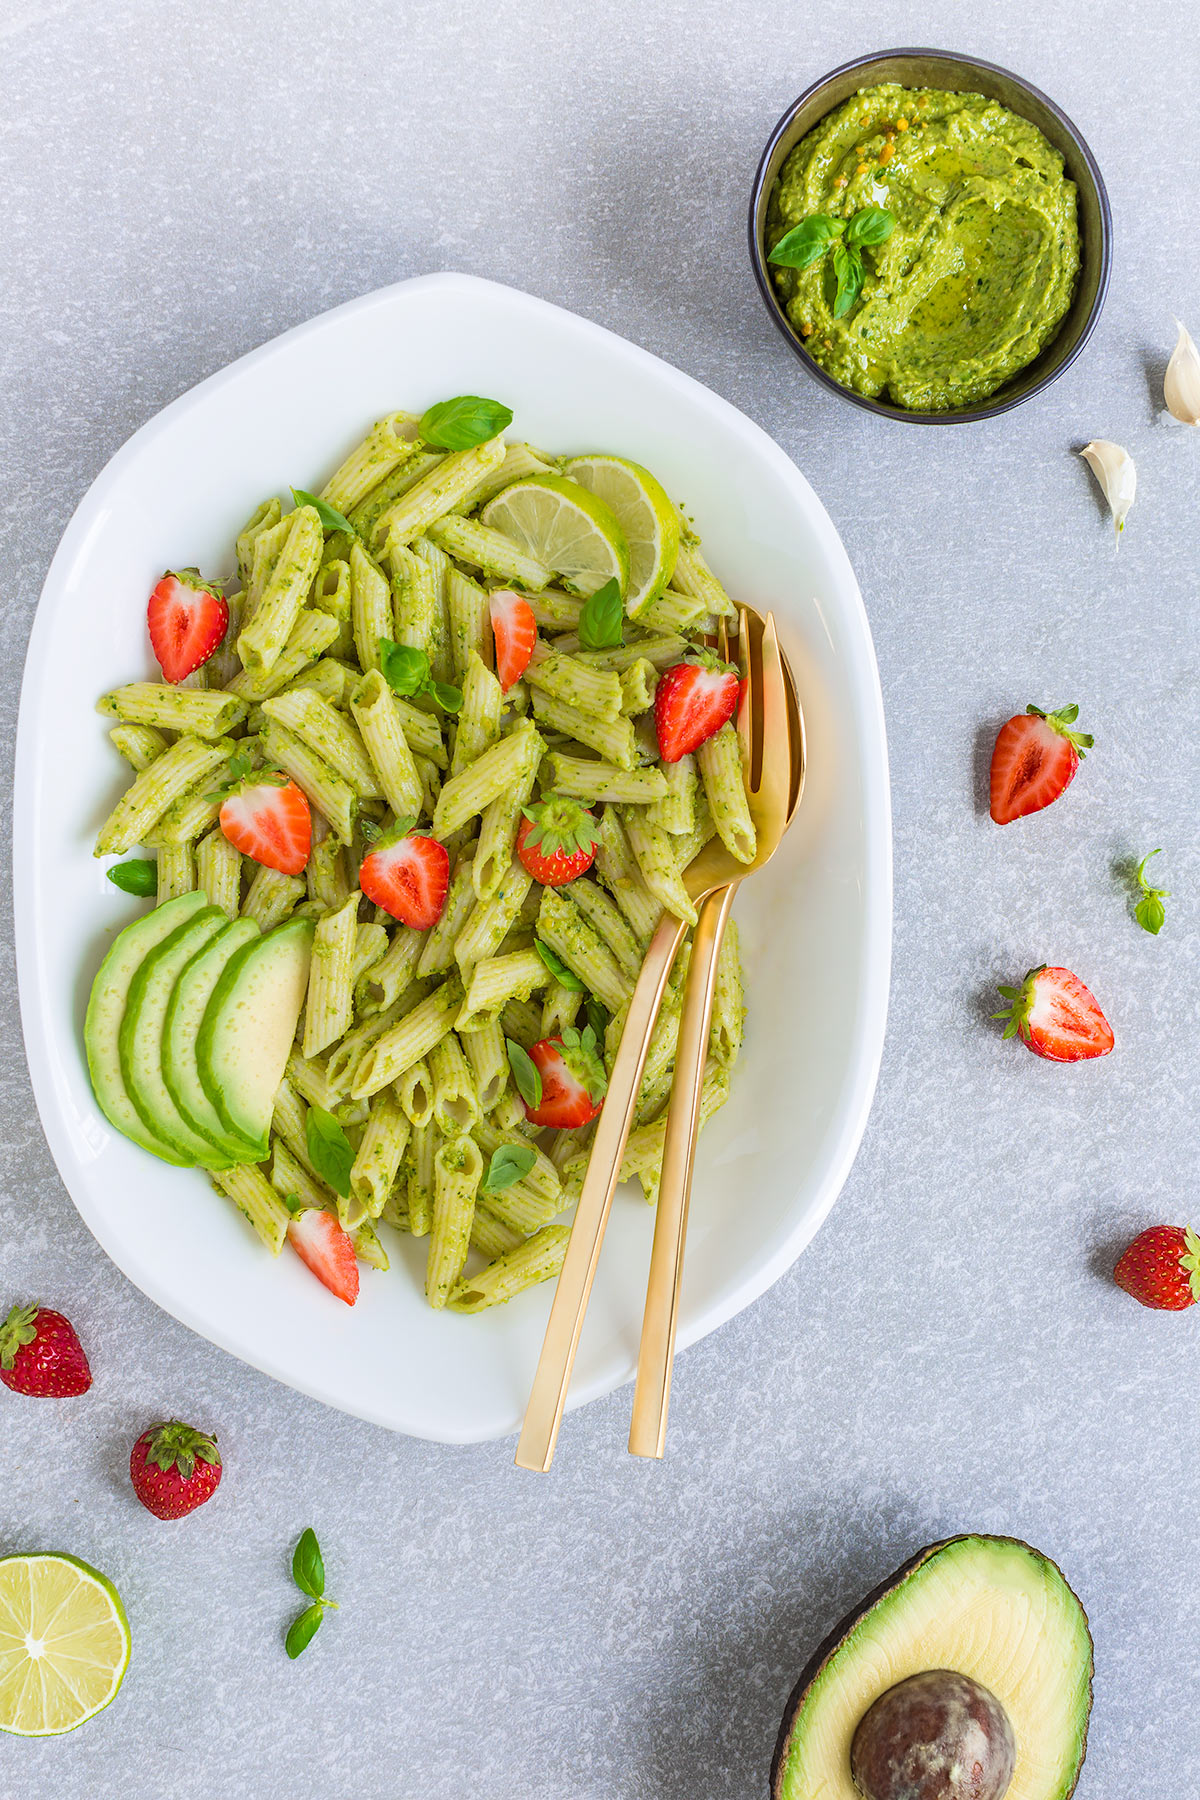 #vegan creamy #AVOCADO ZUCCHINI #PESTO PASTA with konjac rich in fibers - PASTA al PESTO di AVOCADO e ZUCCHINE vegan ricca di fibre